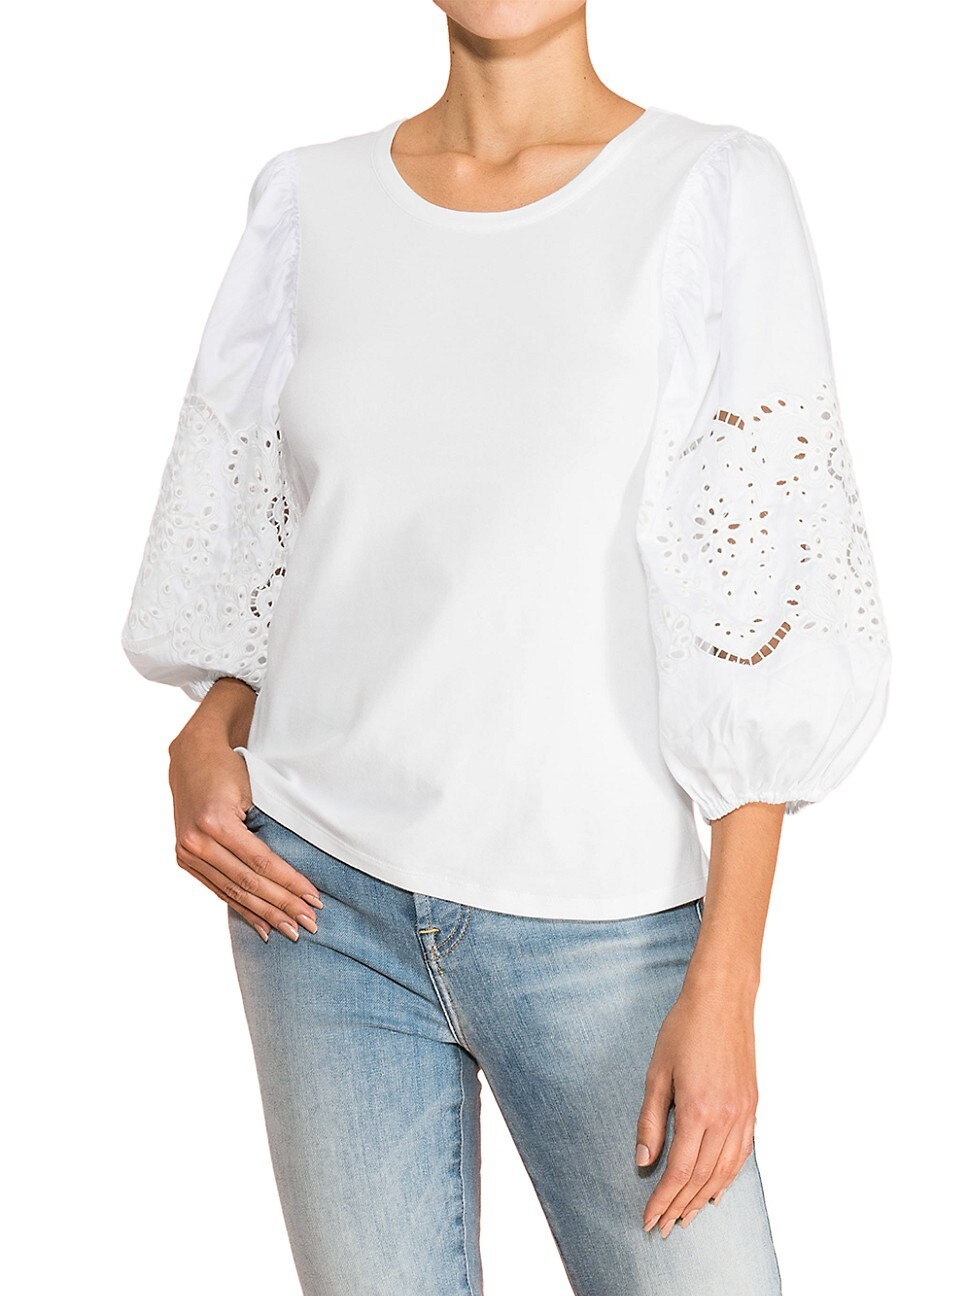 Parker WOMEN'S ZOE EYELET-SLEEVE TOP - IVORY - SIZE LARGE